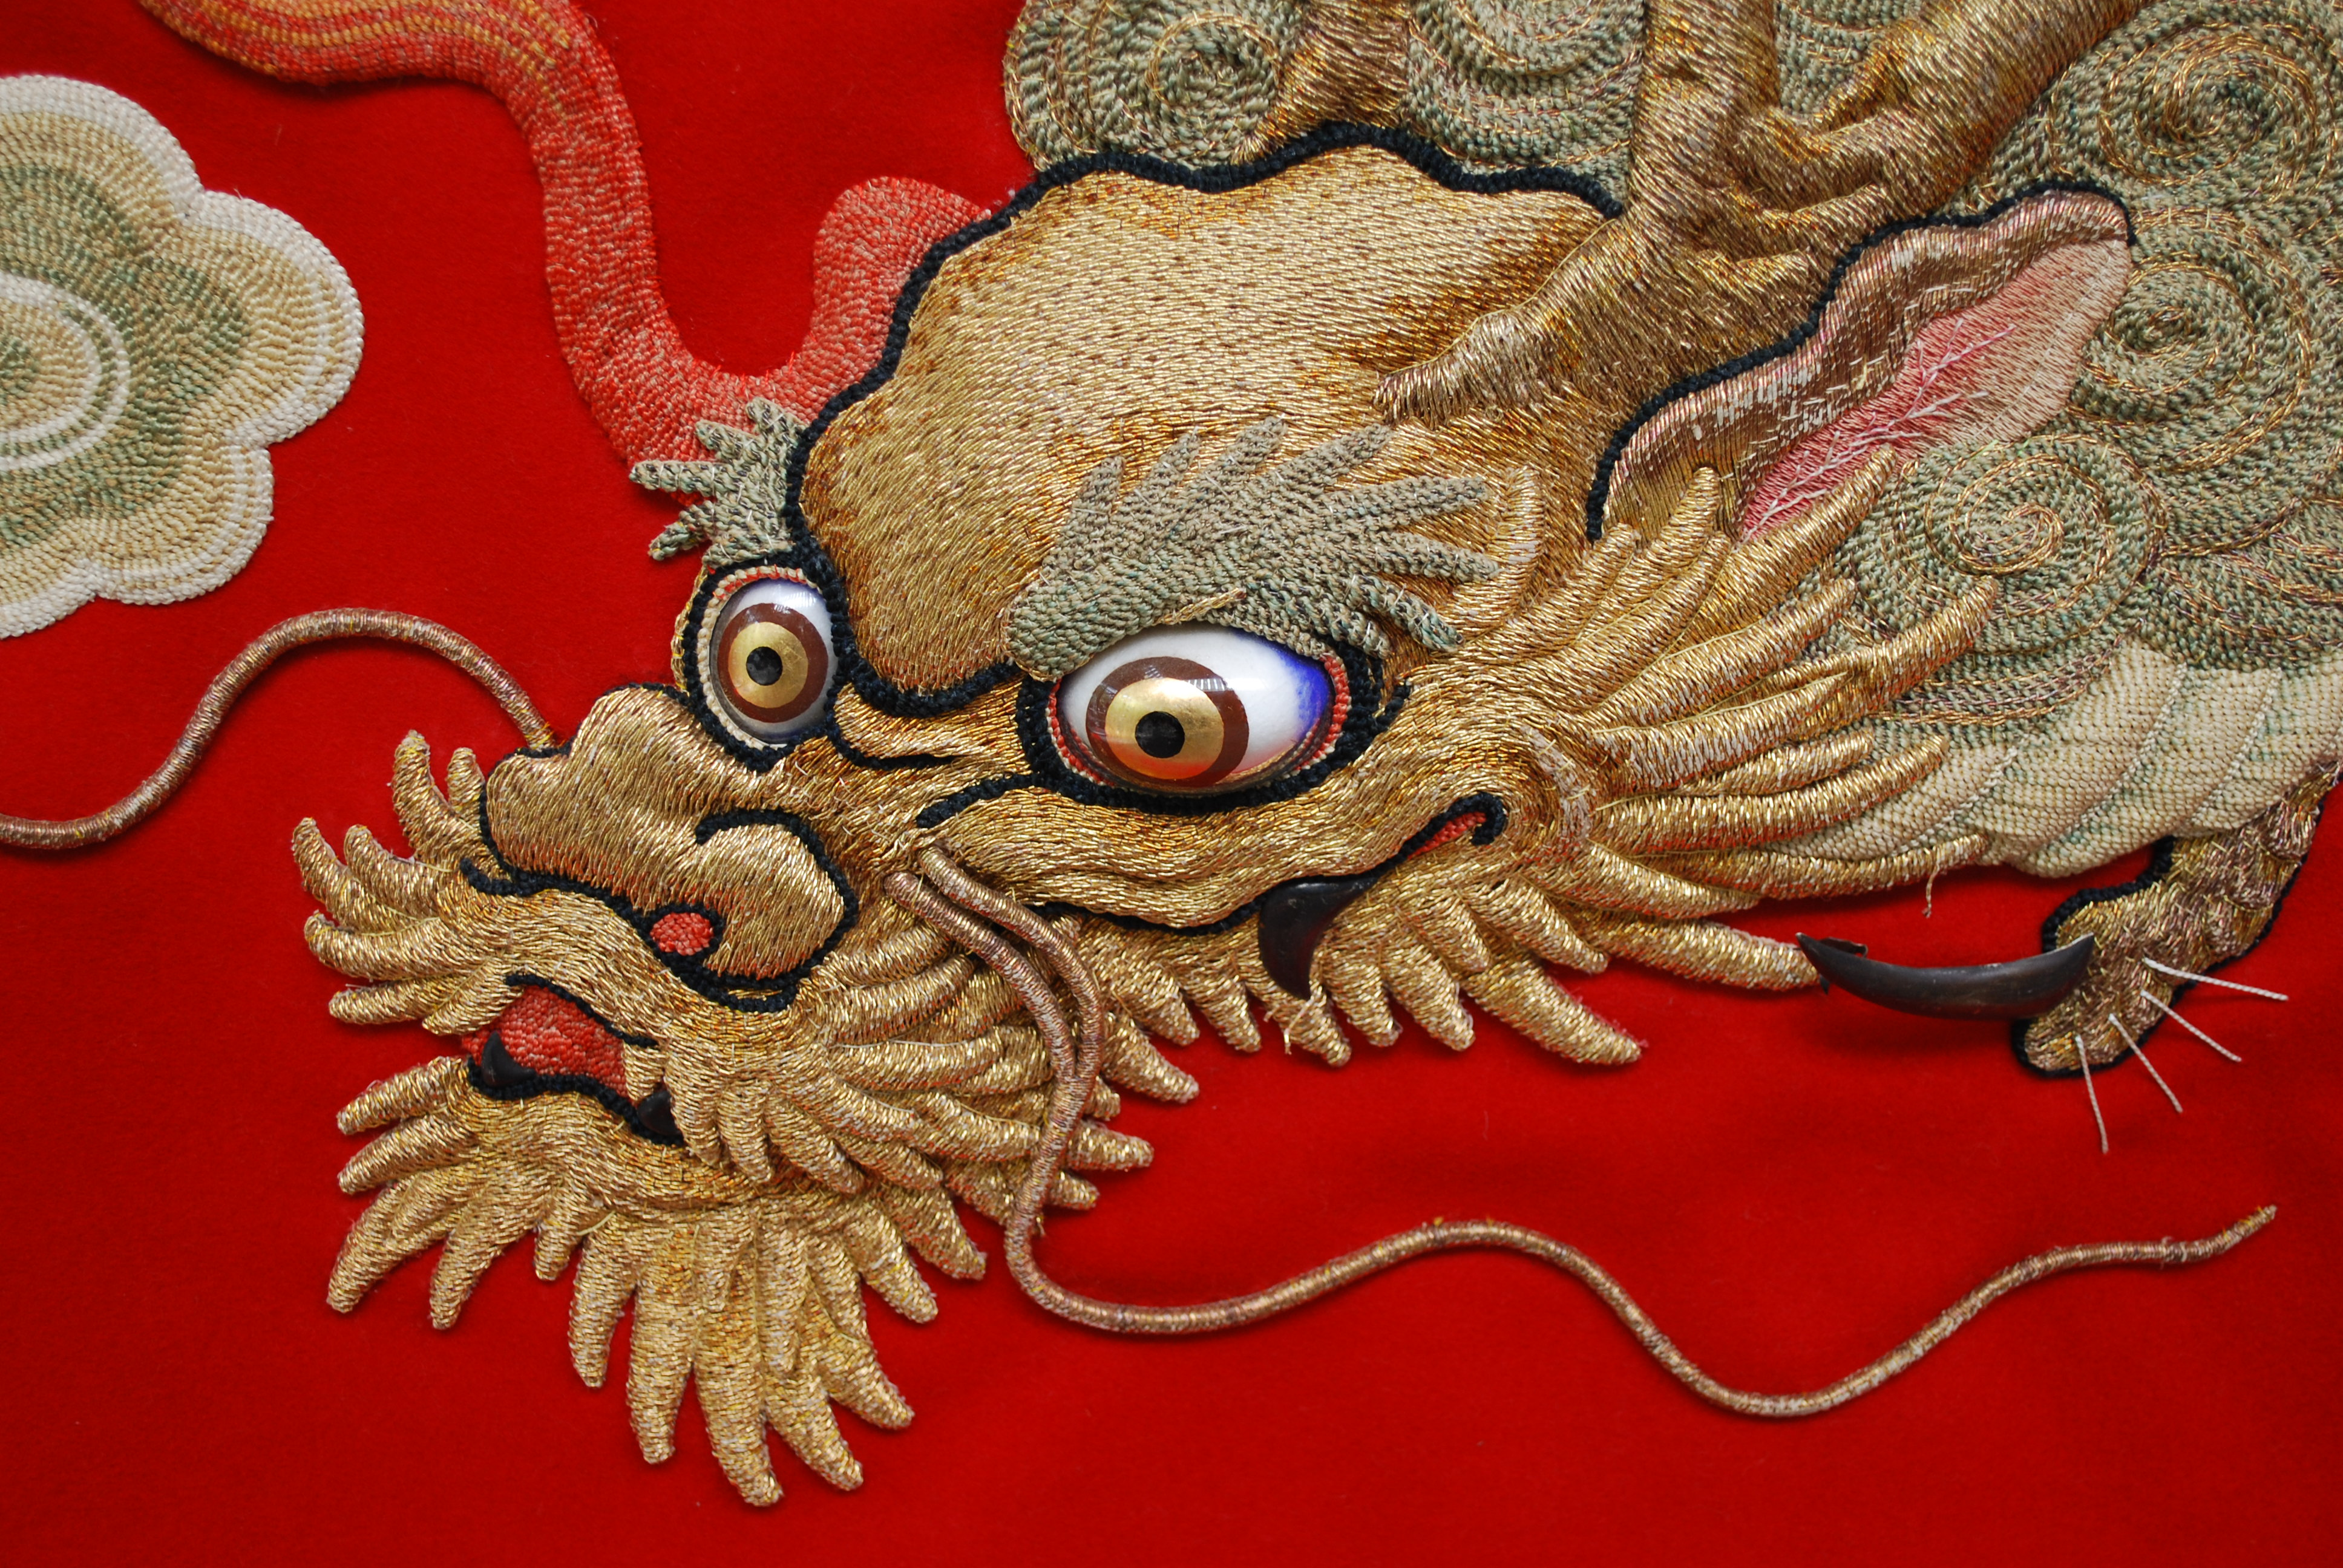 FileThe Embroidery Of The Festival Car Of The Festival Of